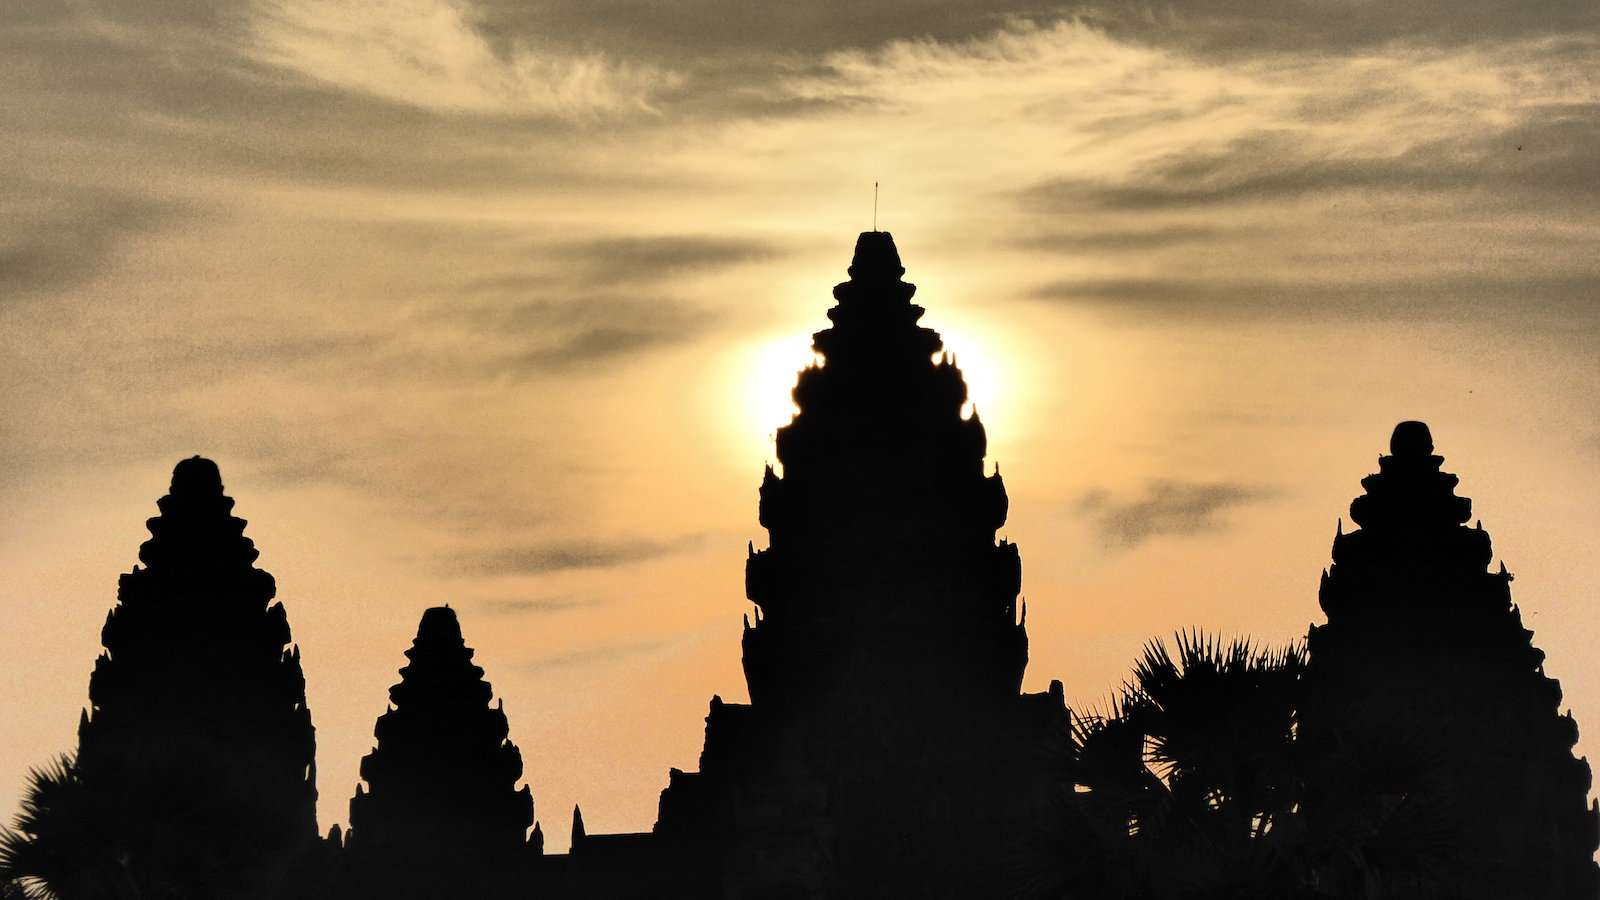 Angkor Wat is an important national monument and tourist destination in Cambodia